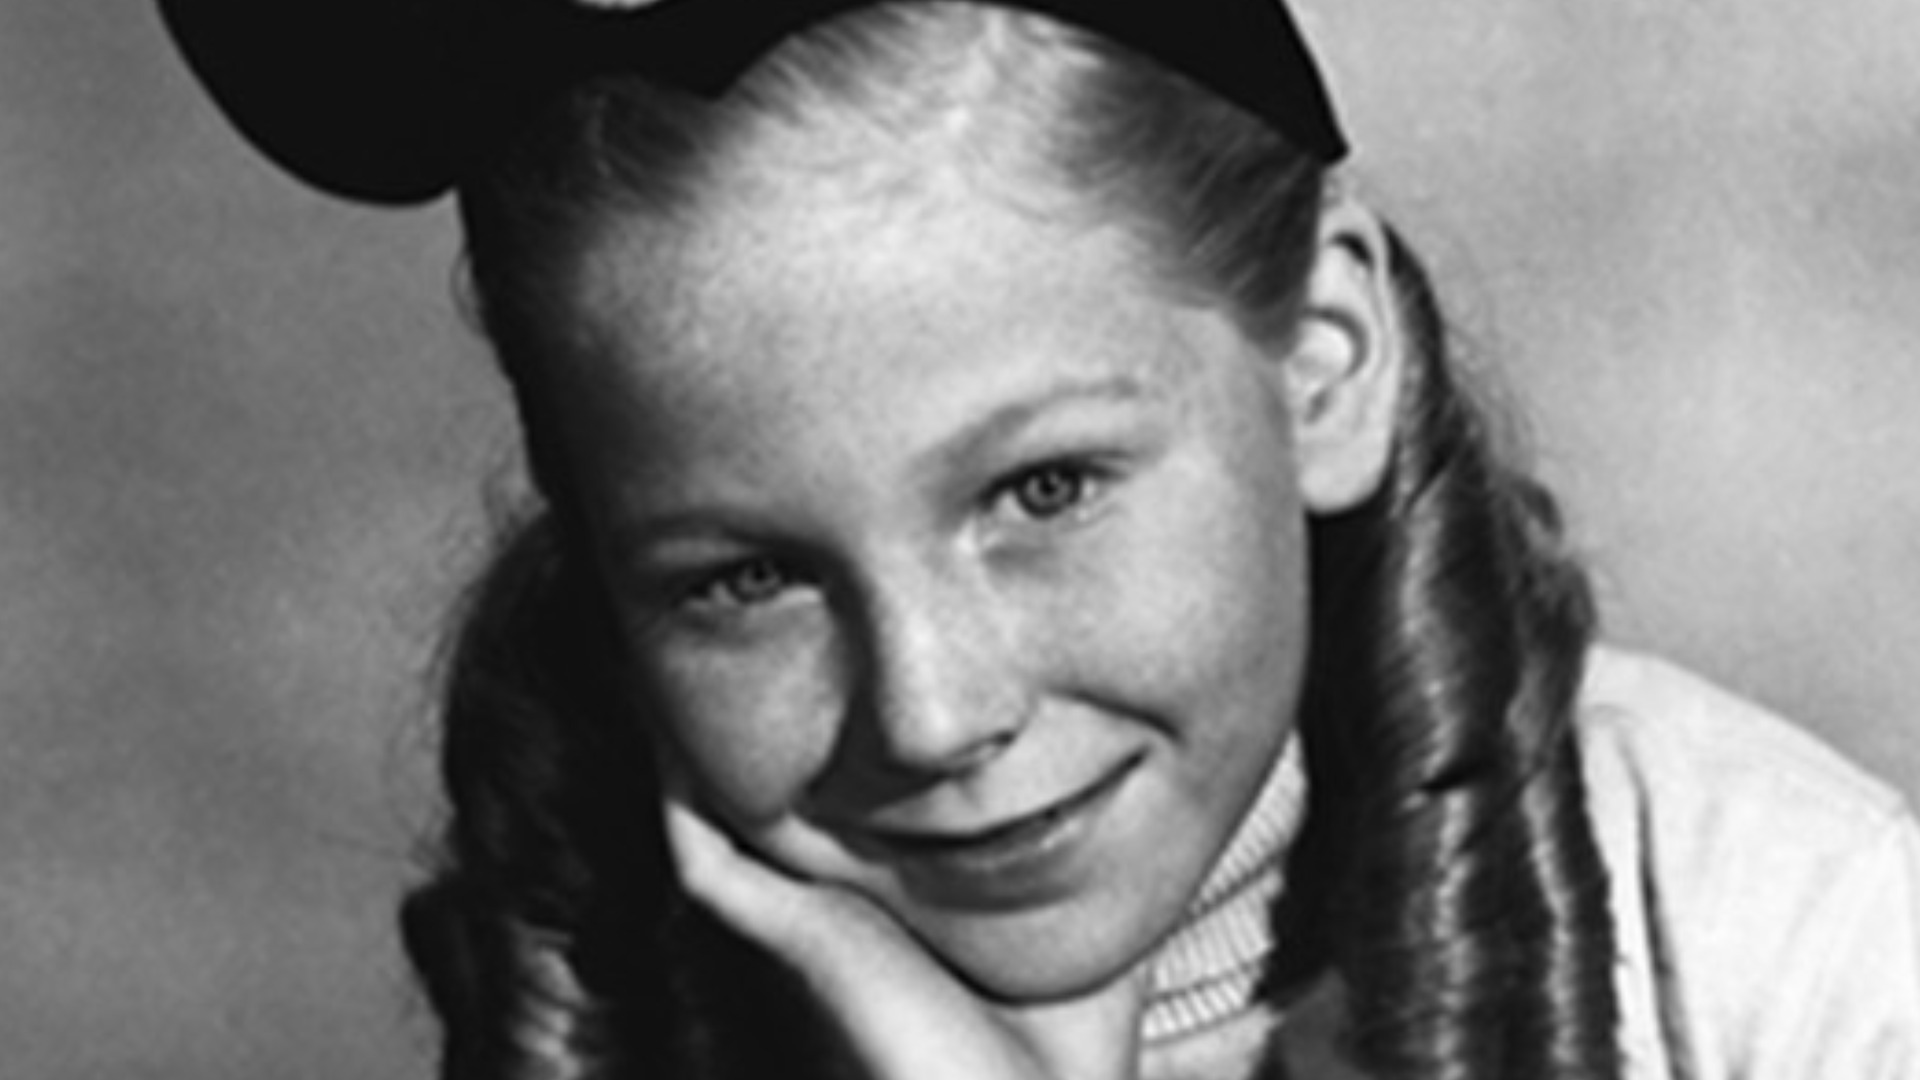 Tragic Details About The Original Mickey Mouse Club Cast